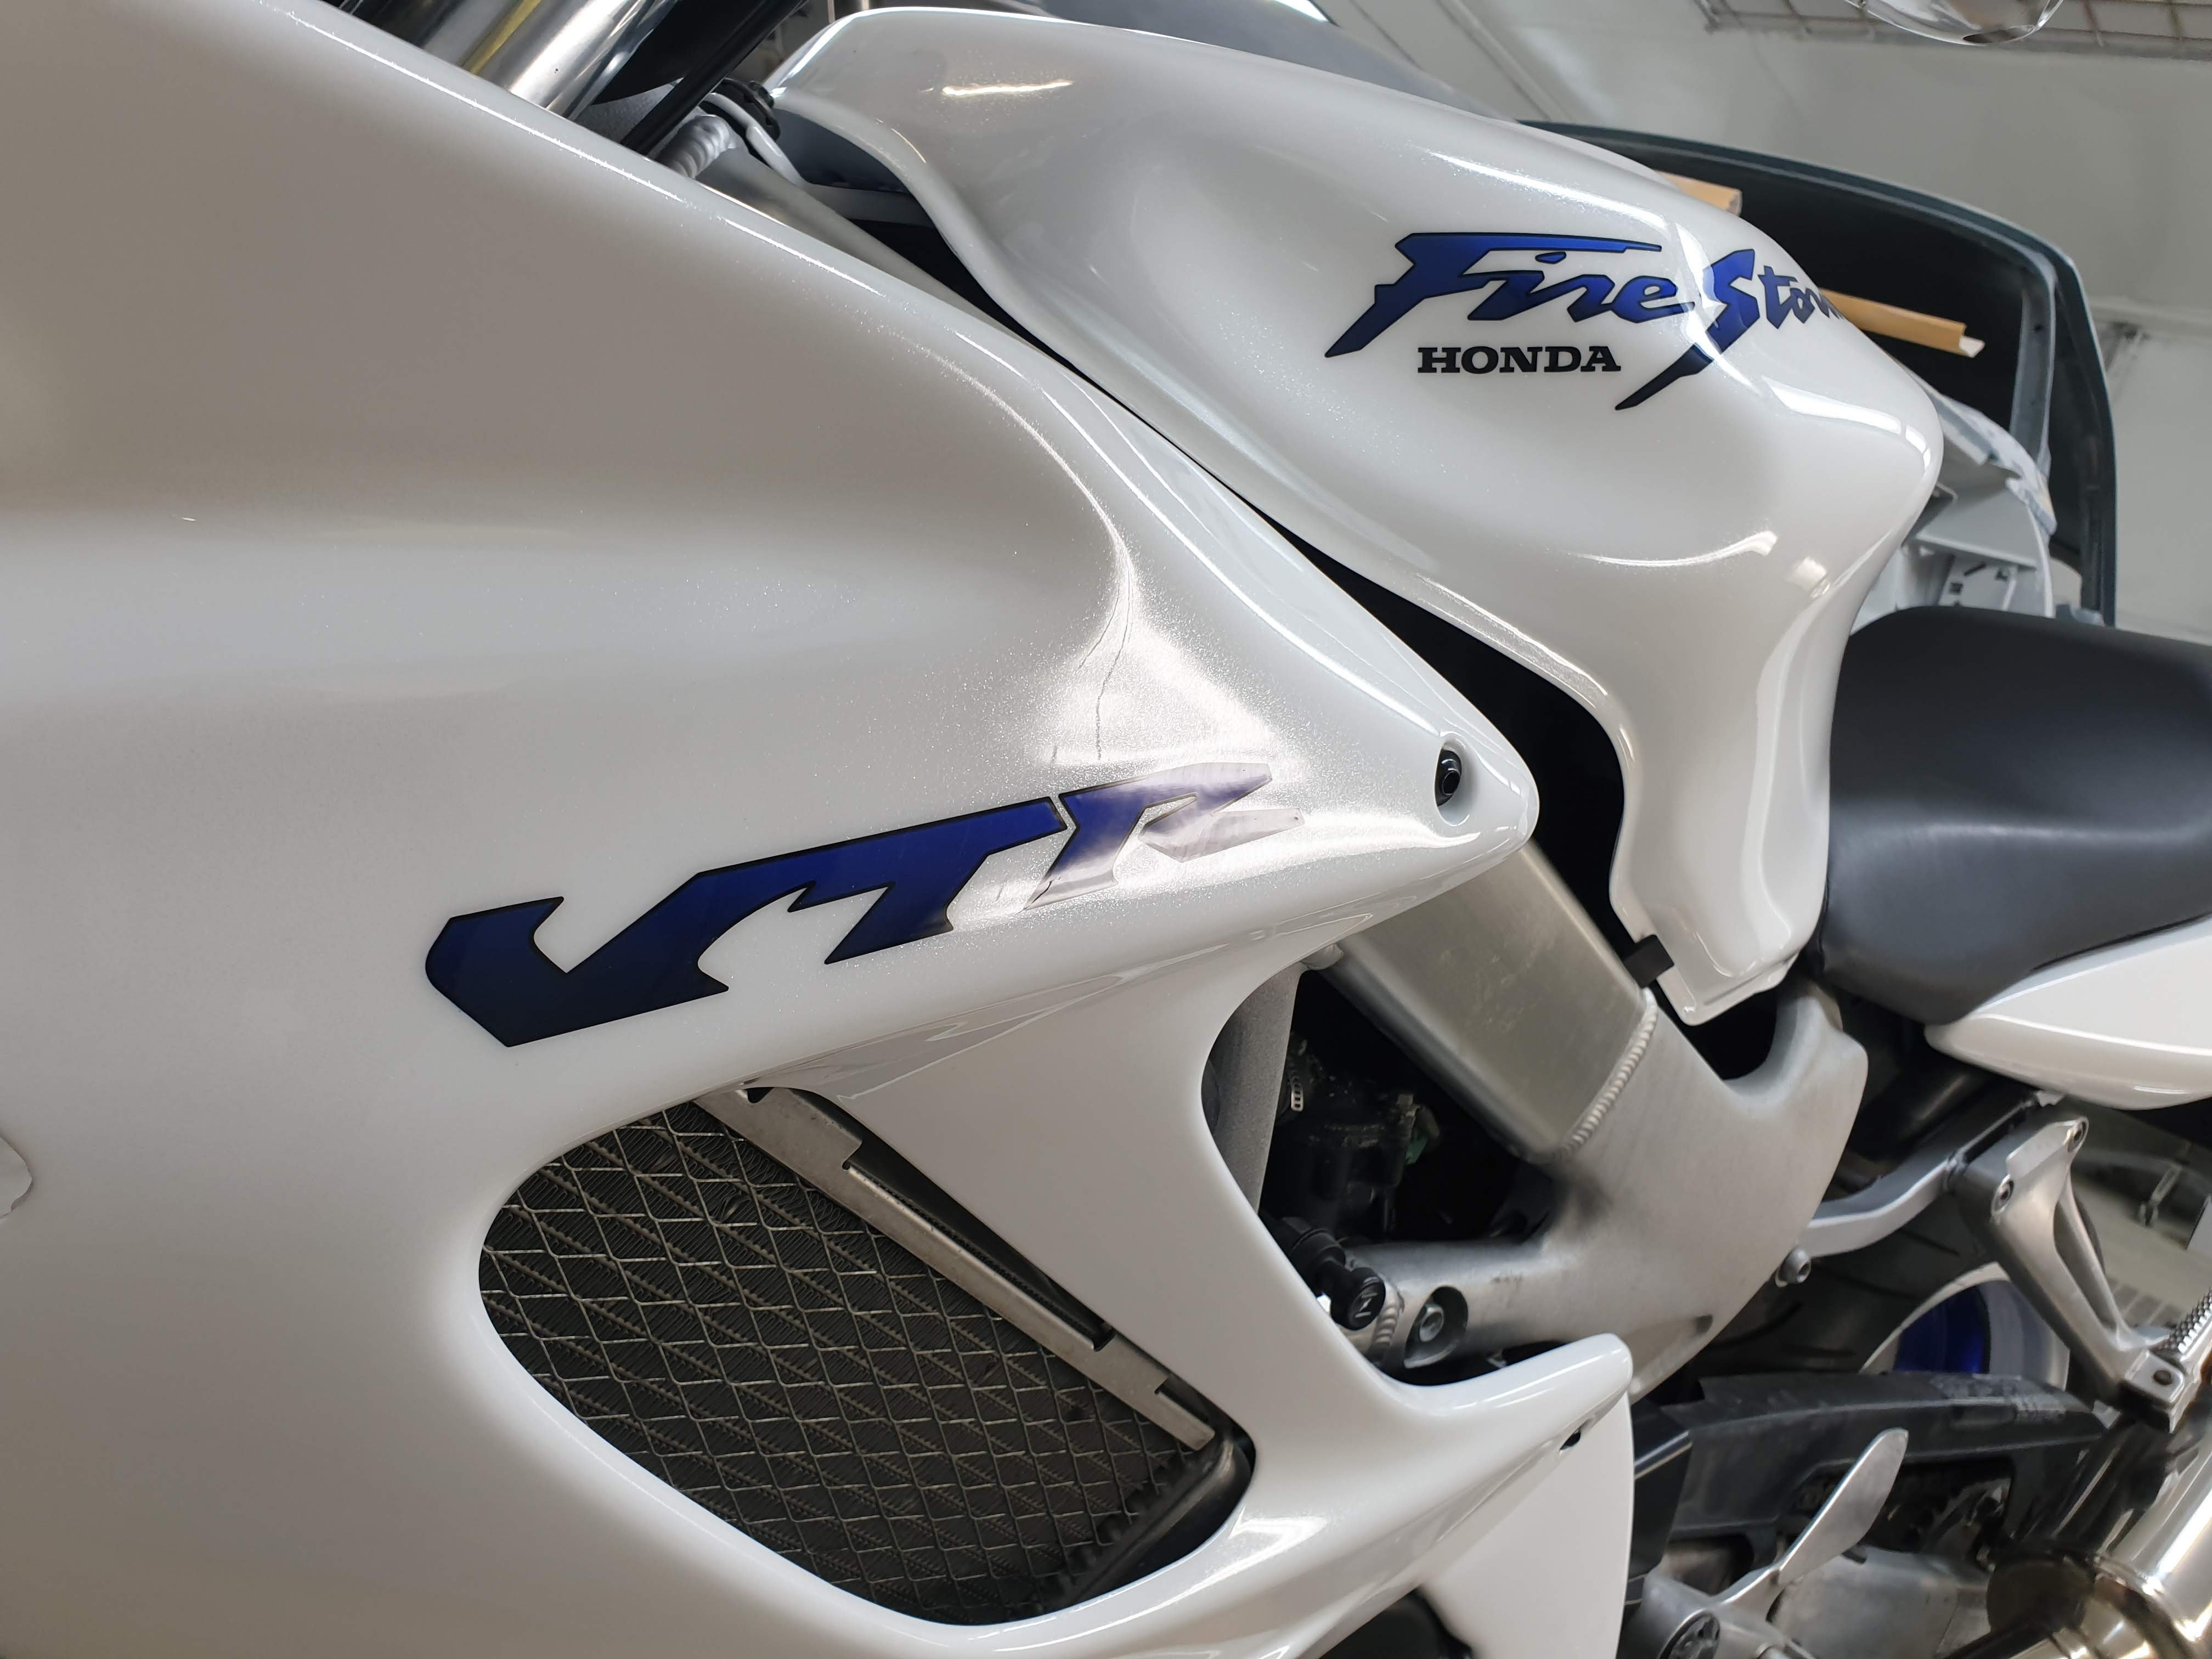 Honda VTR firestorm white pearl blue candy 15